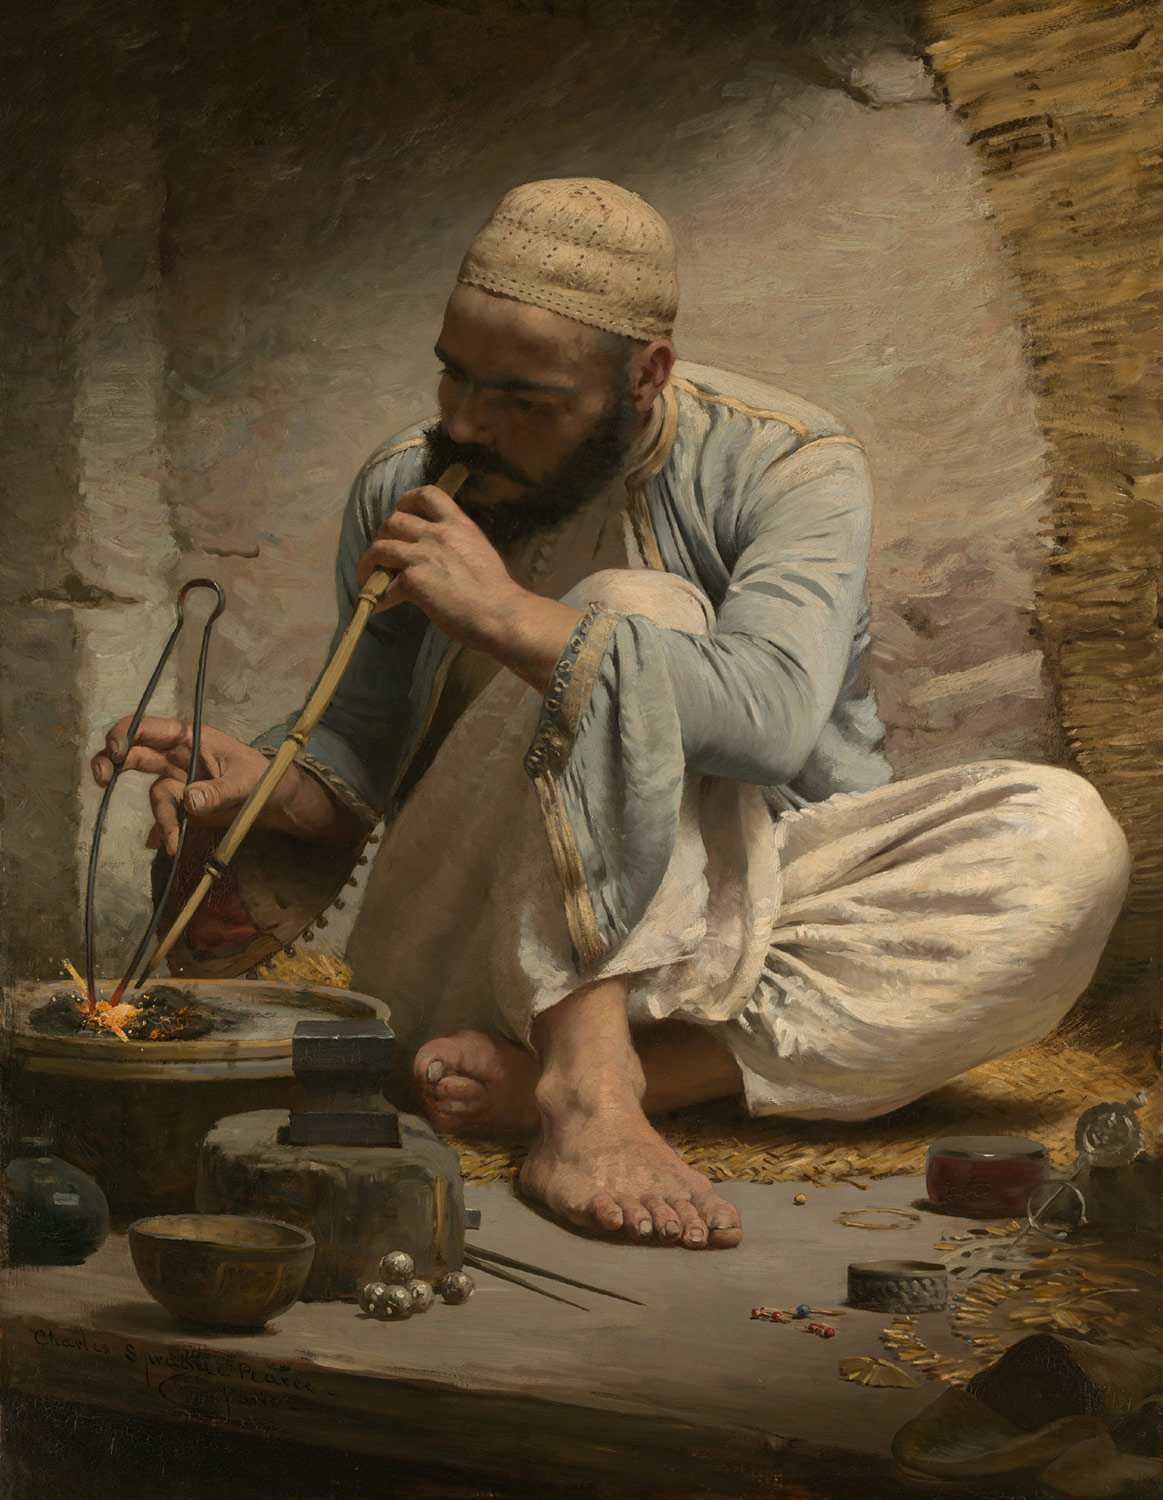 The Arab Jeweler